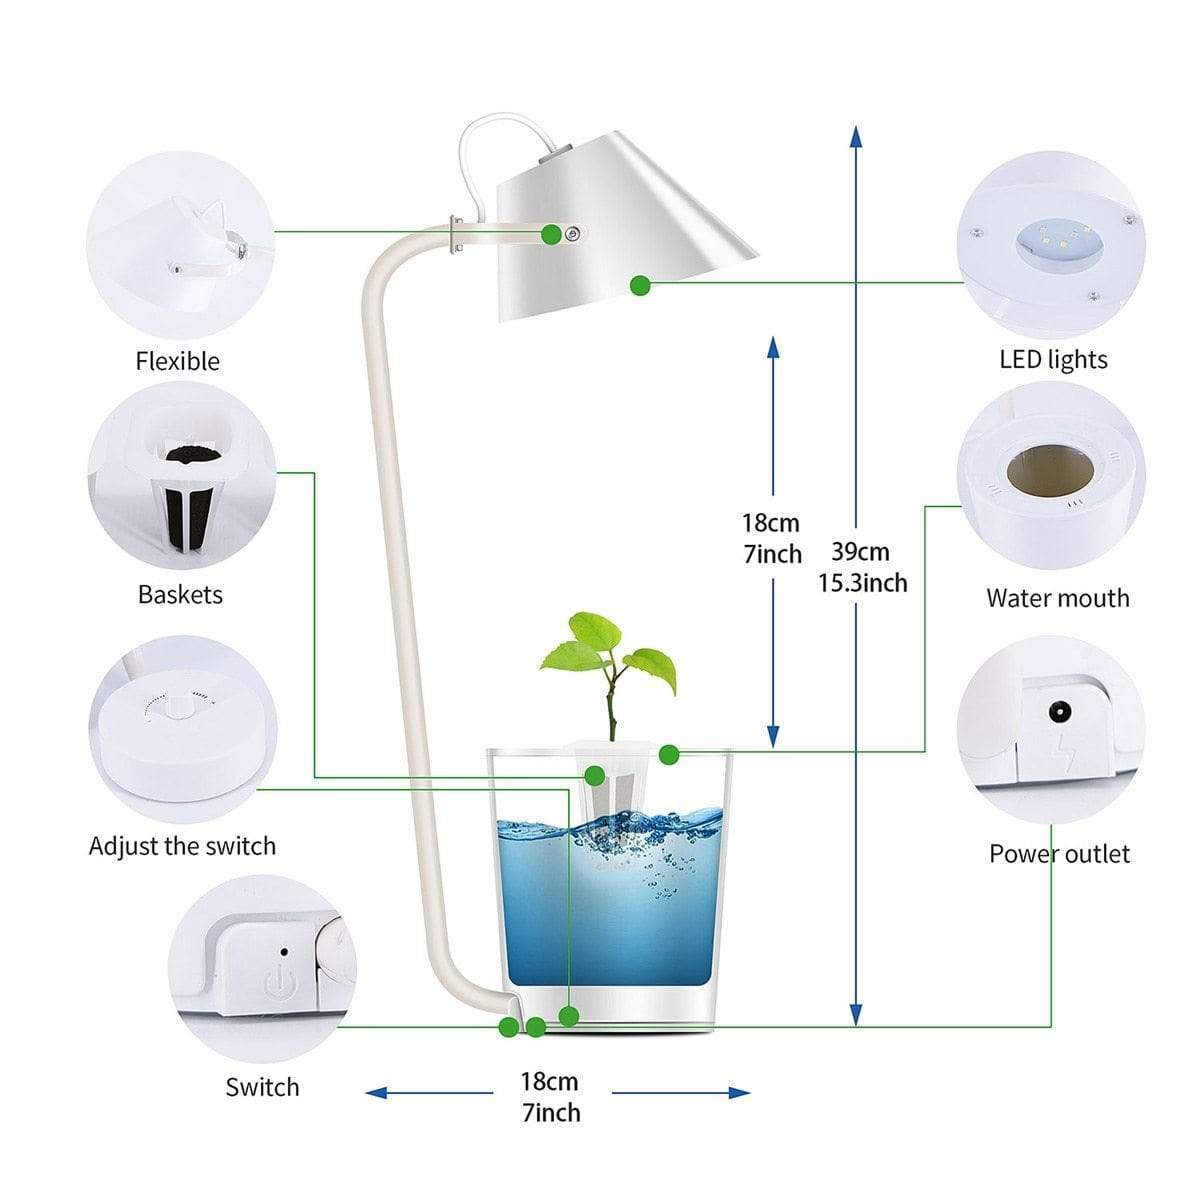 Soilless Smart Garden Kit